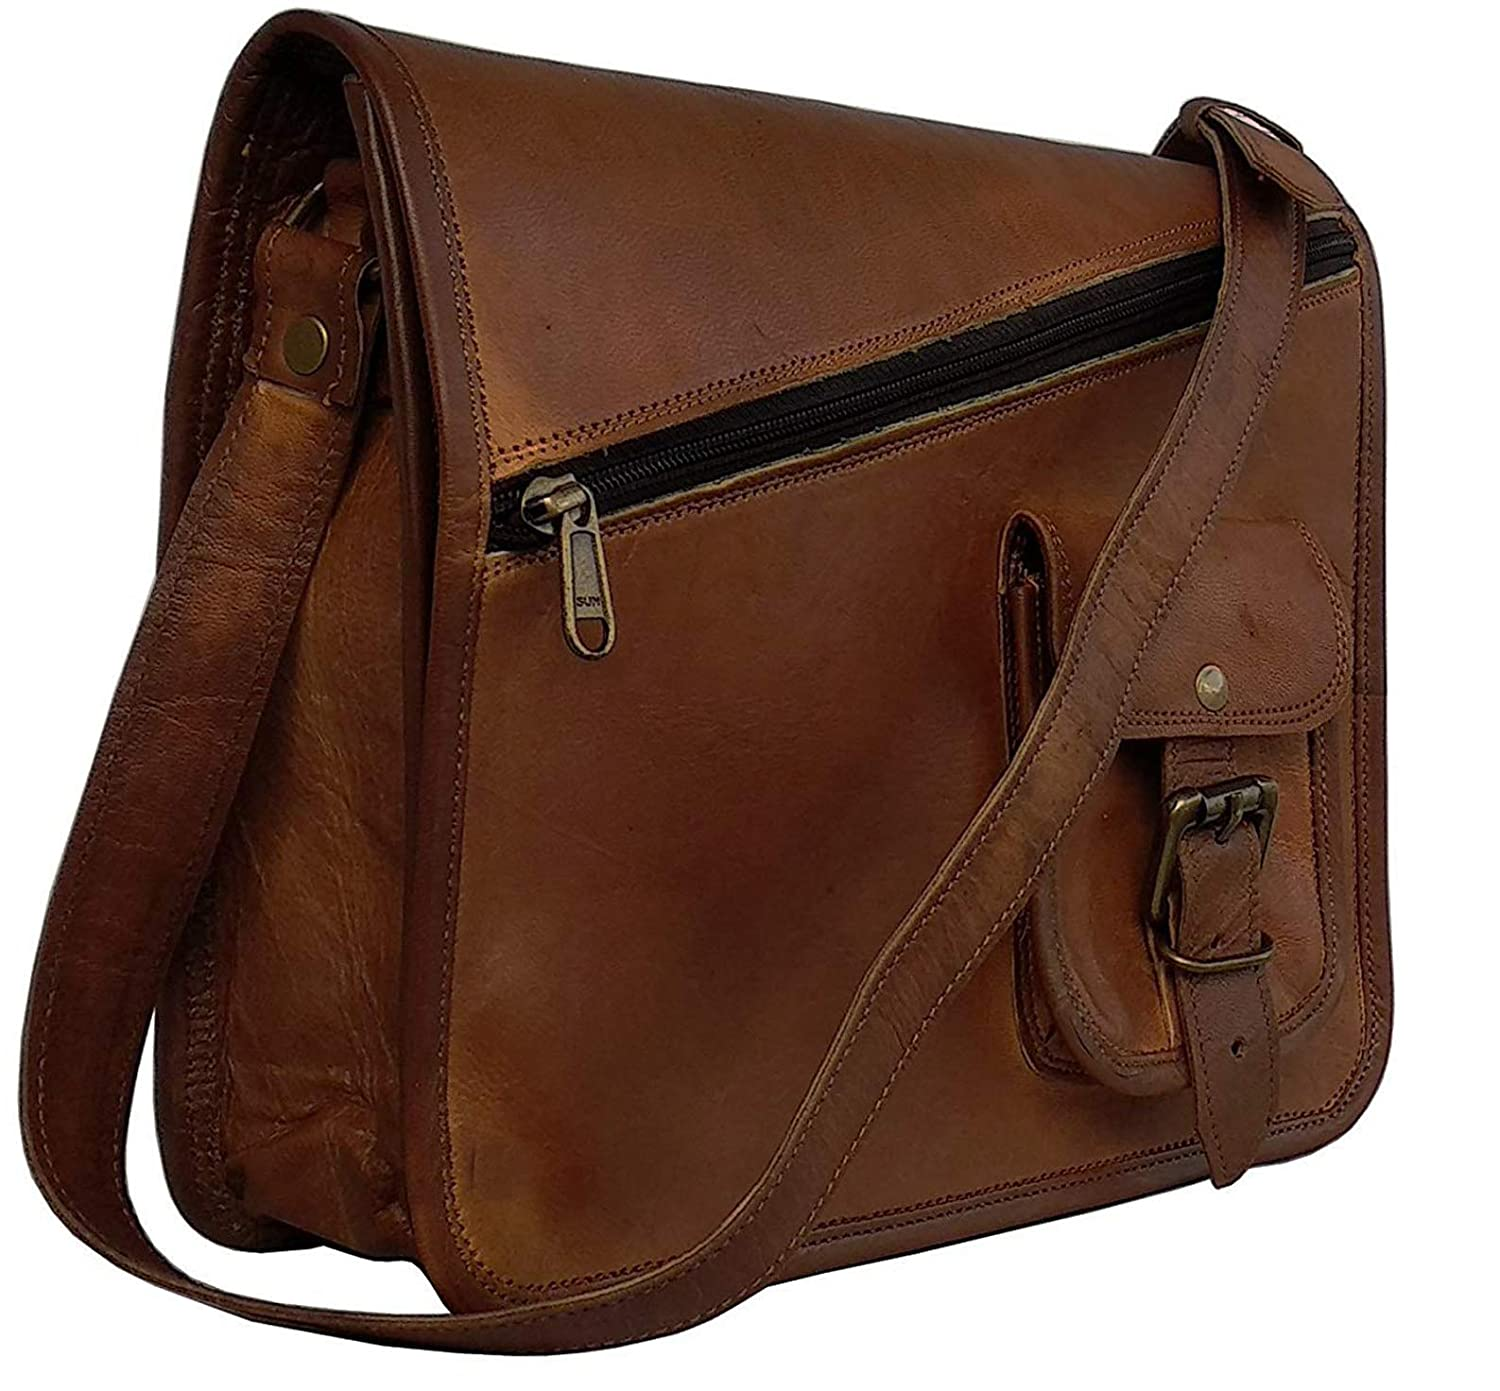 25bf5208b147f Amazon.com: MNI Small Leather Messenger Bag Shoulder Bag Cross Body Vintage  Messenger Bag Women & Men Satchel (9 x 11): Sports & Outdoors